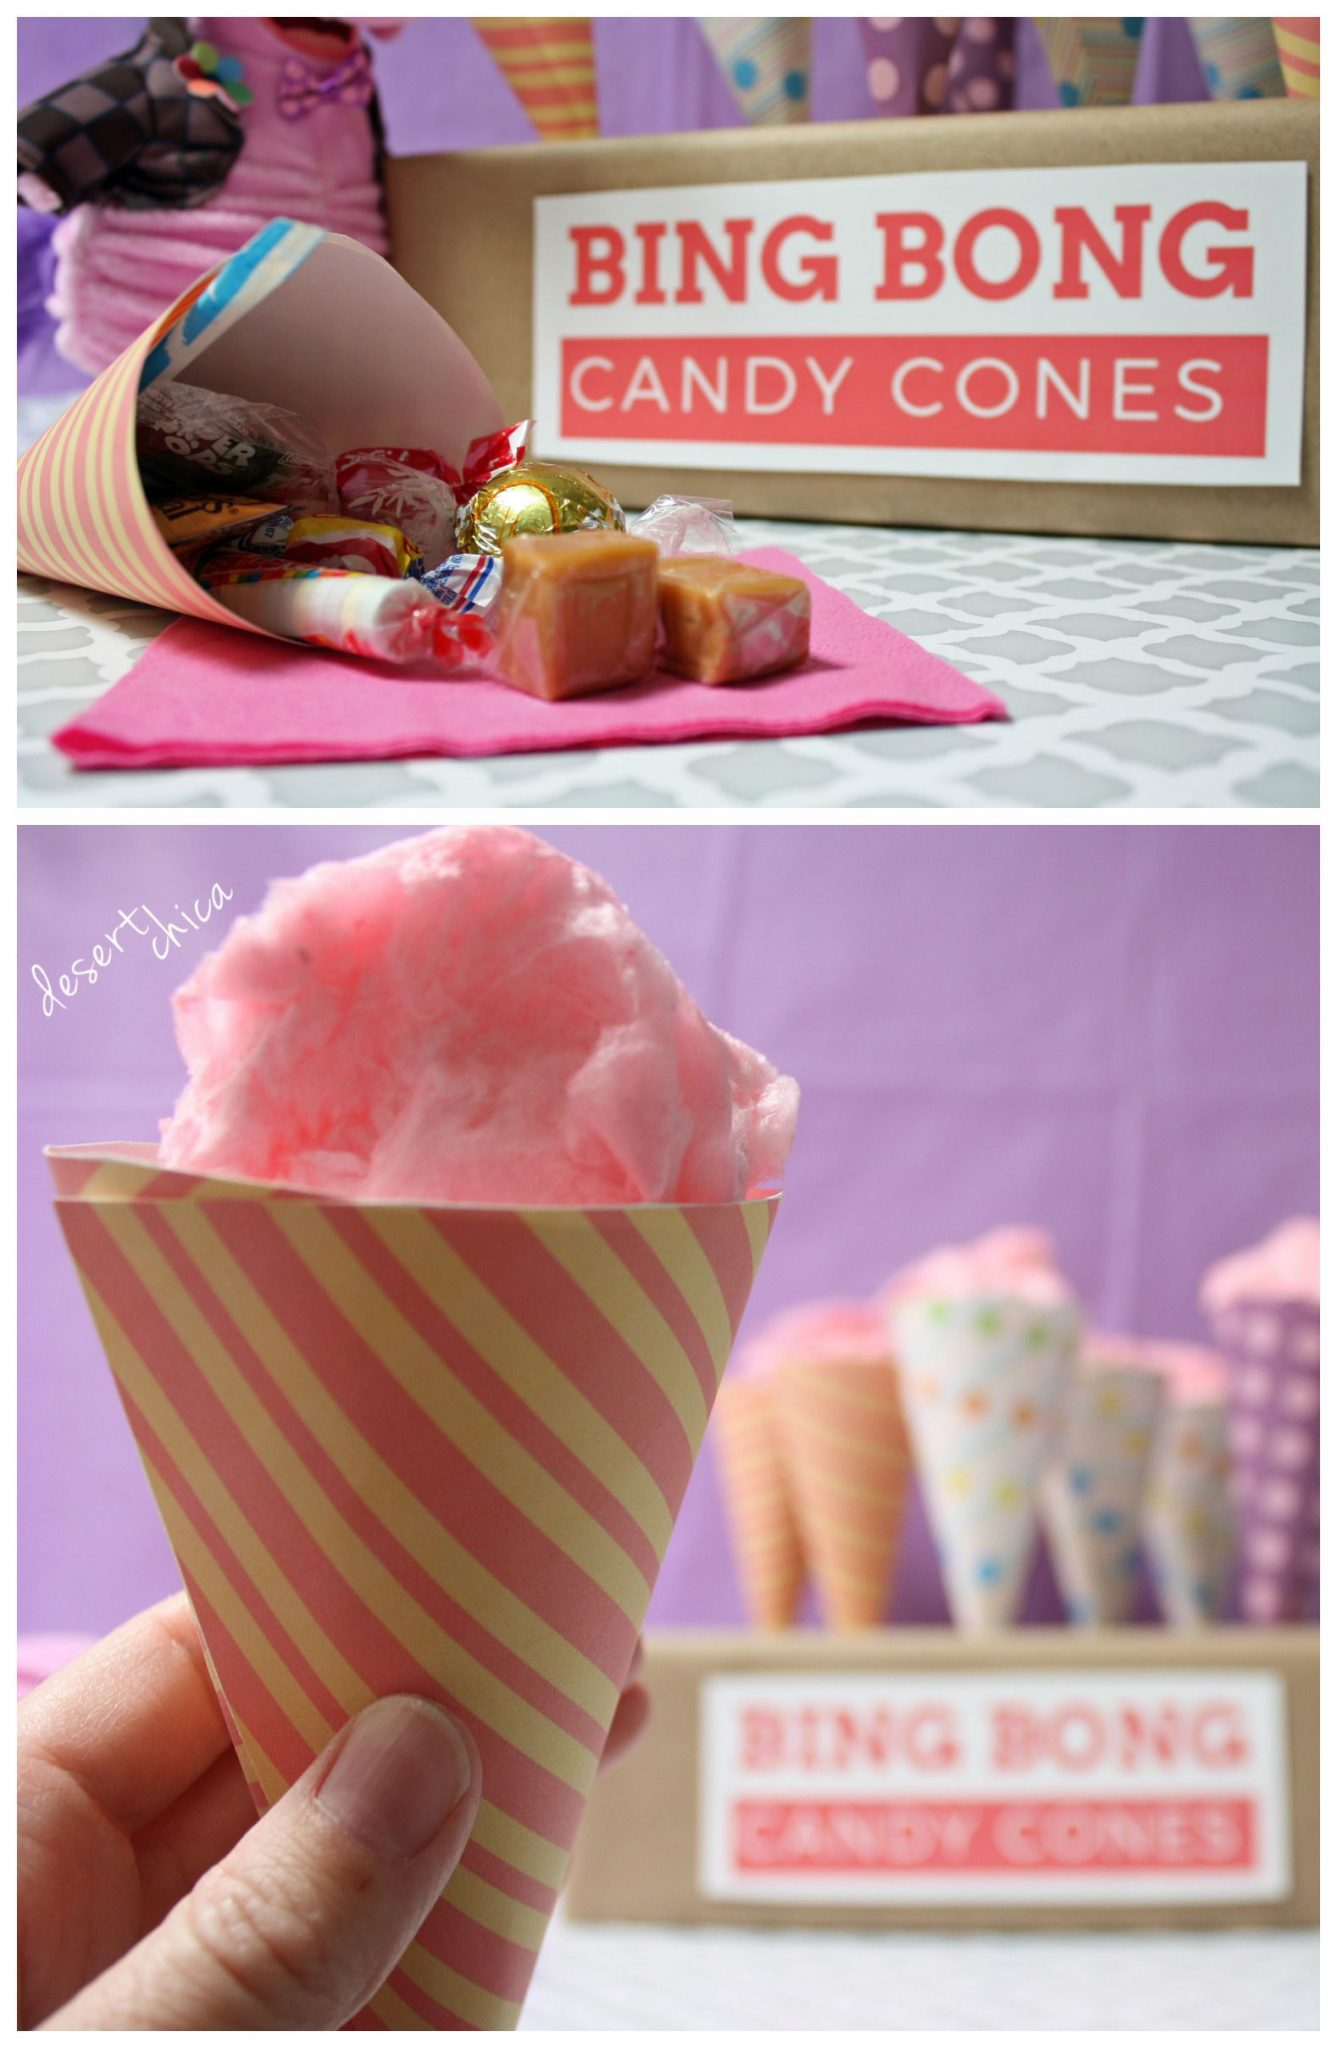 Bing Bong Candy Cones with Cotton Candy and Caramel